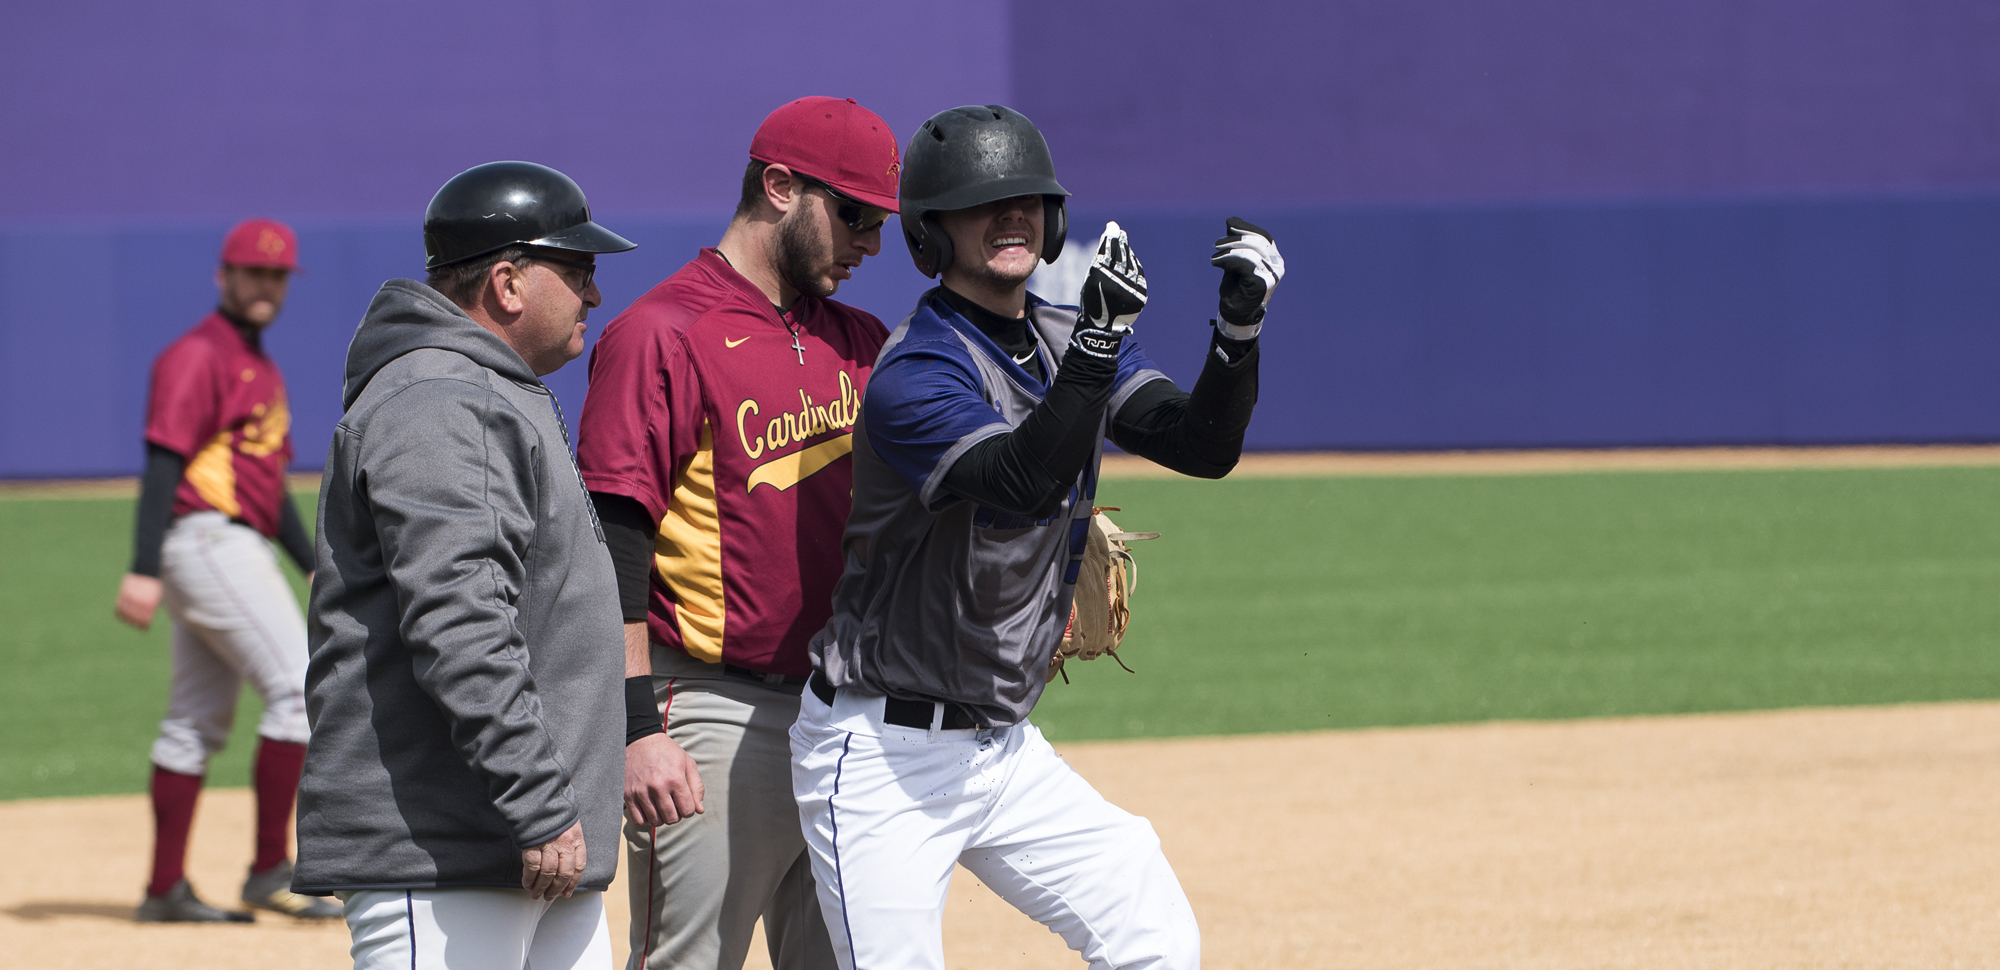 Senior second baseman Brad Schneider had the 100th hit of his career in the Royals' win over Moravian on Saturday.